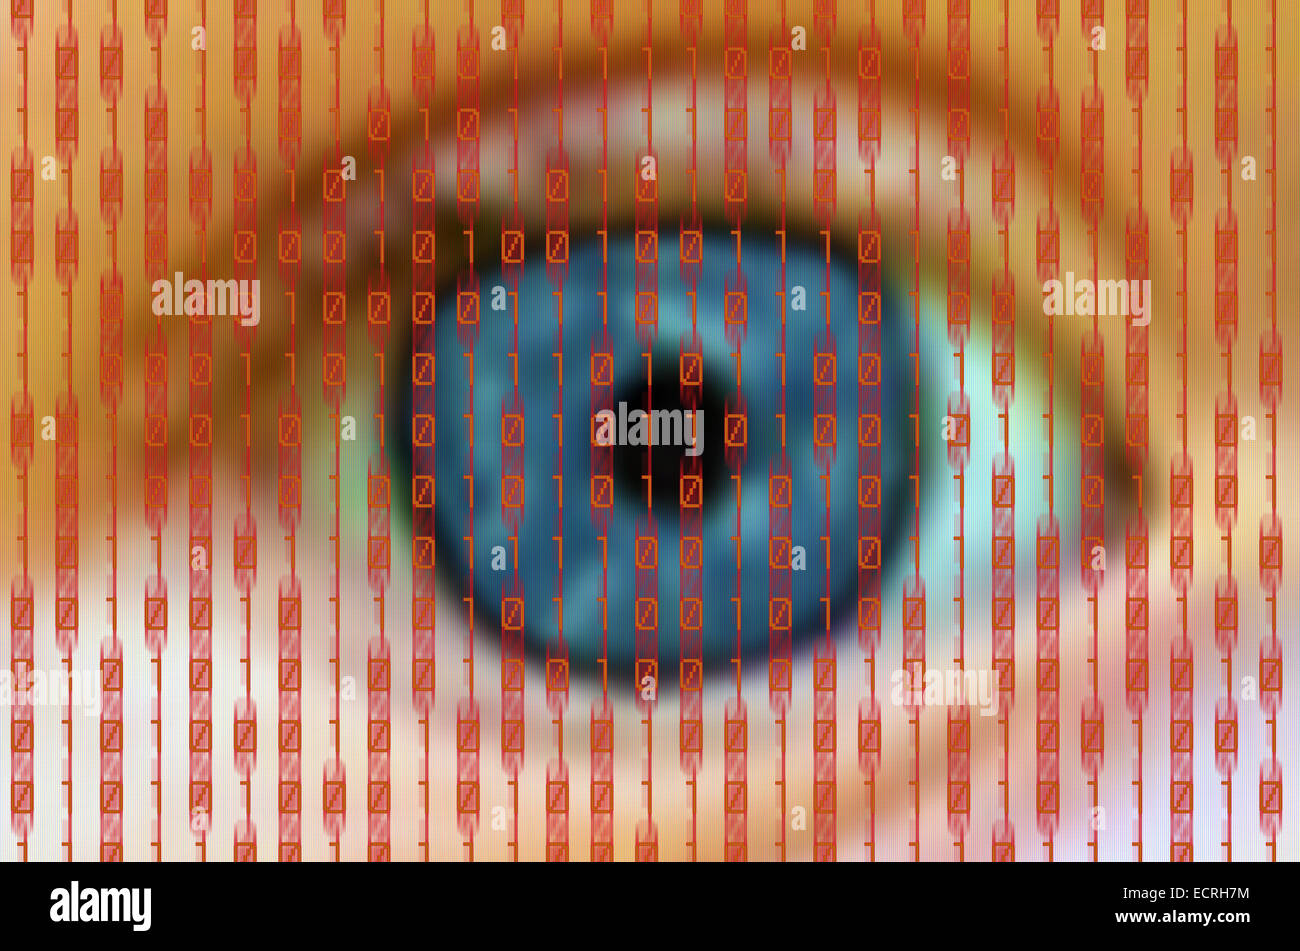 human eye behind a digital screen with red binary numbers - Stock Image